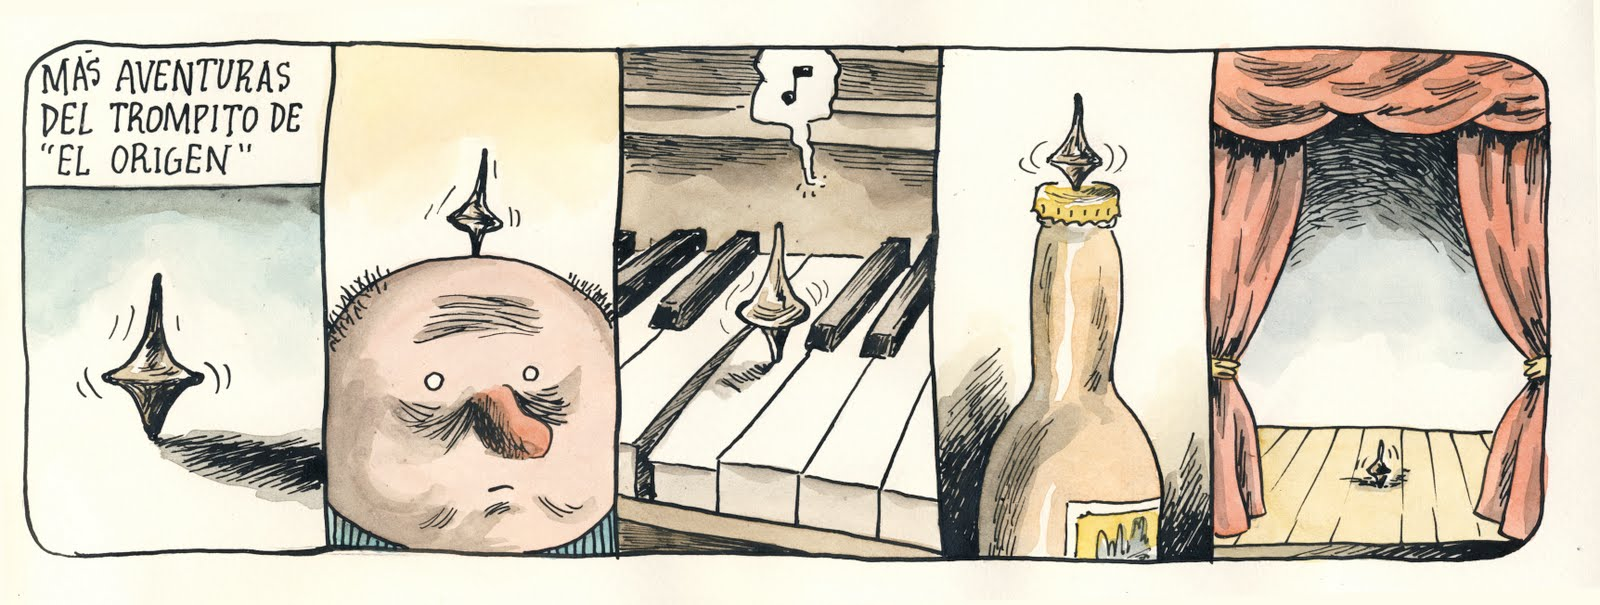 LINIERS7